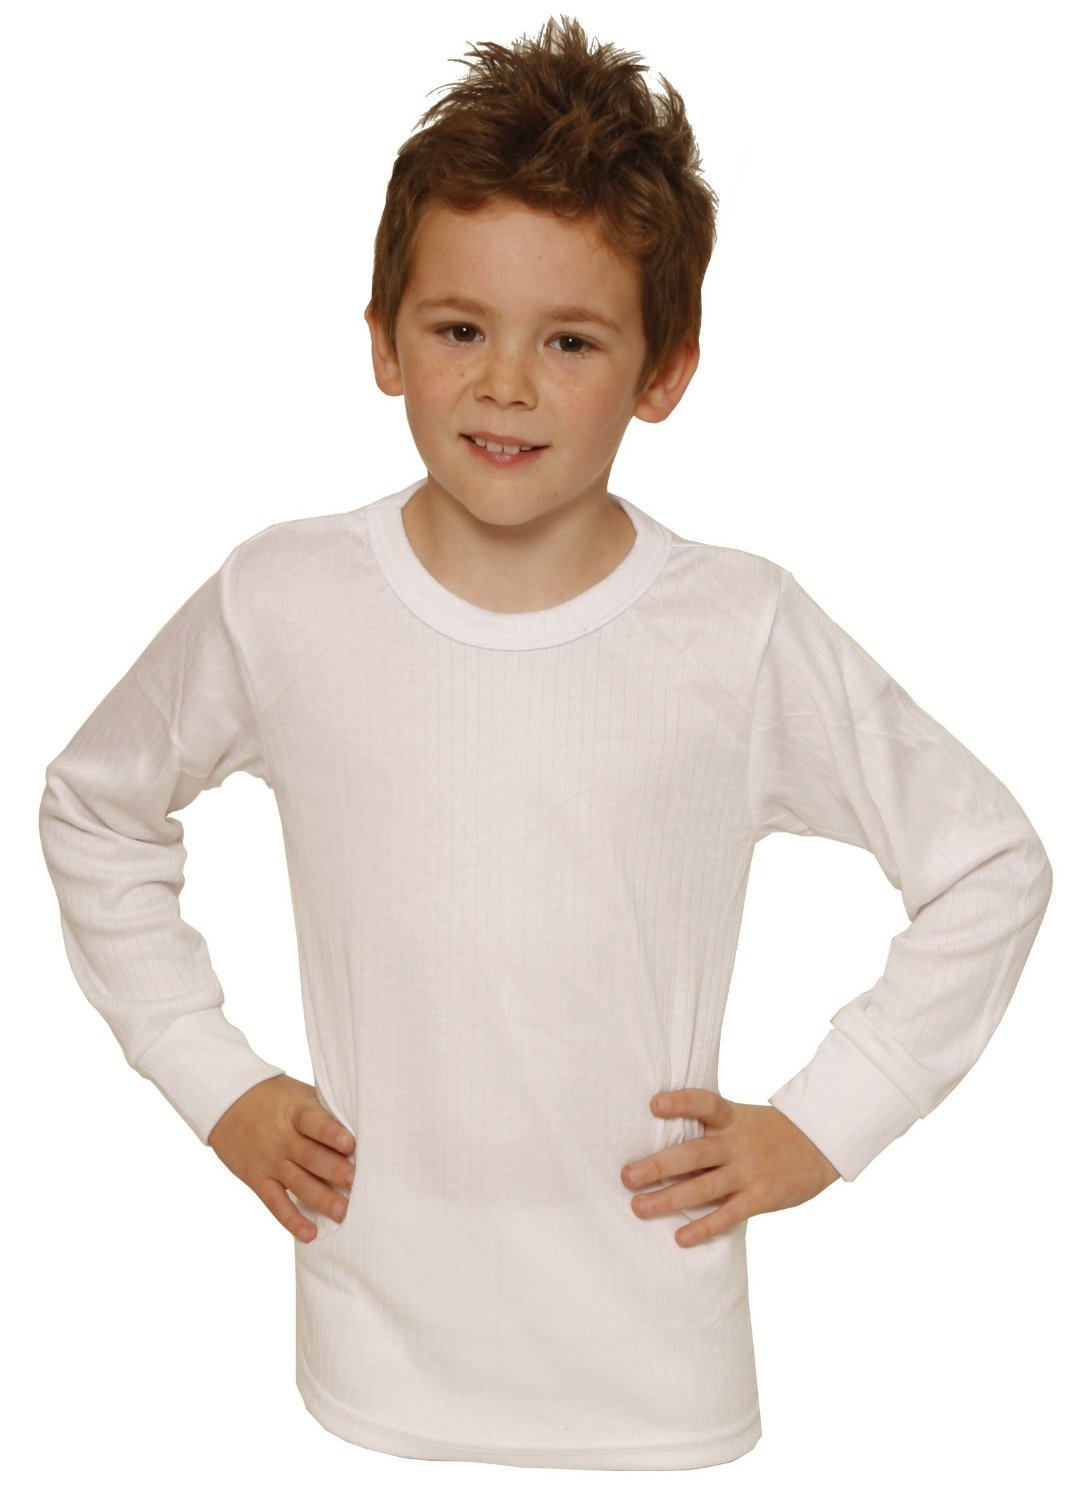 Octave 12 Pack Boys Thermal Underwear Long Sleeve T-Shirt/Vest/Top (12-13 yrs [Chest: 30-32 inches], White)